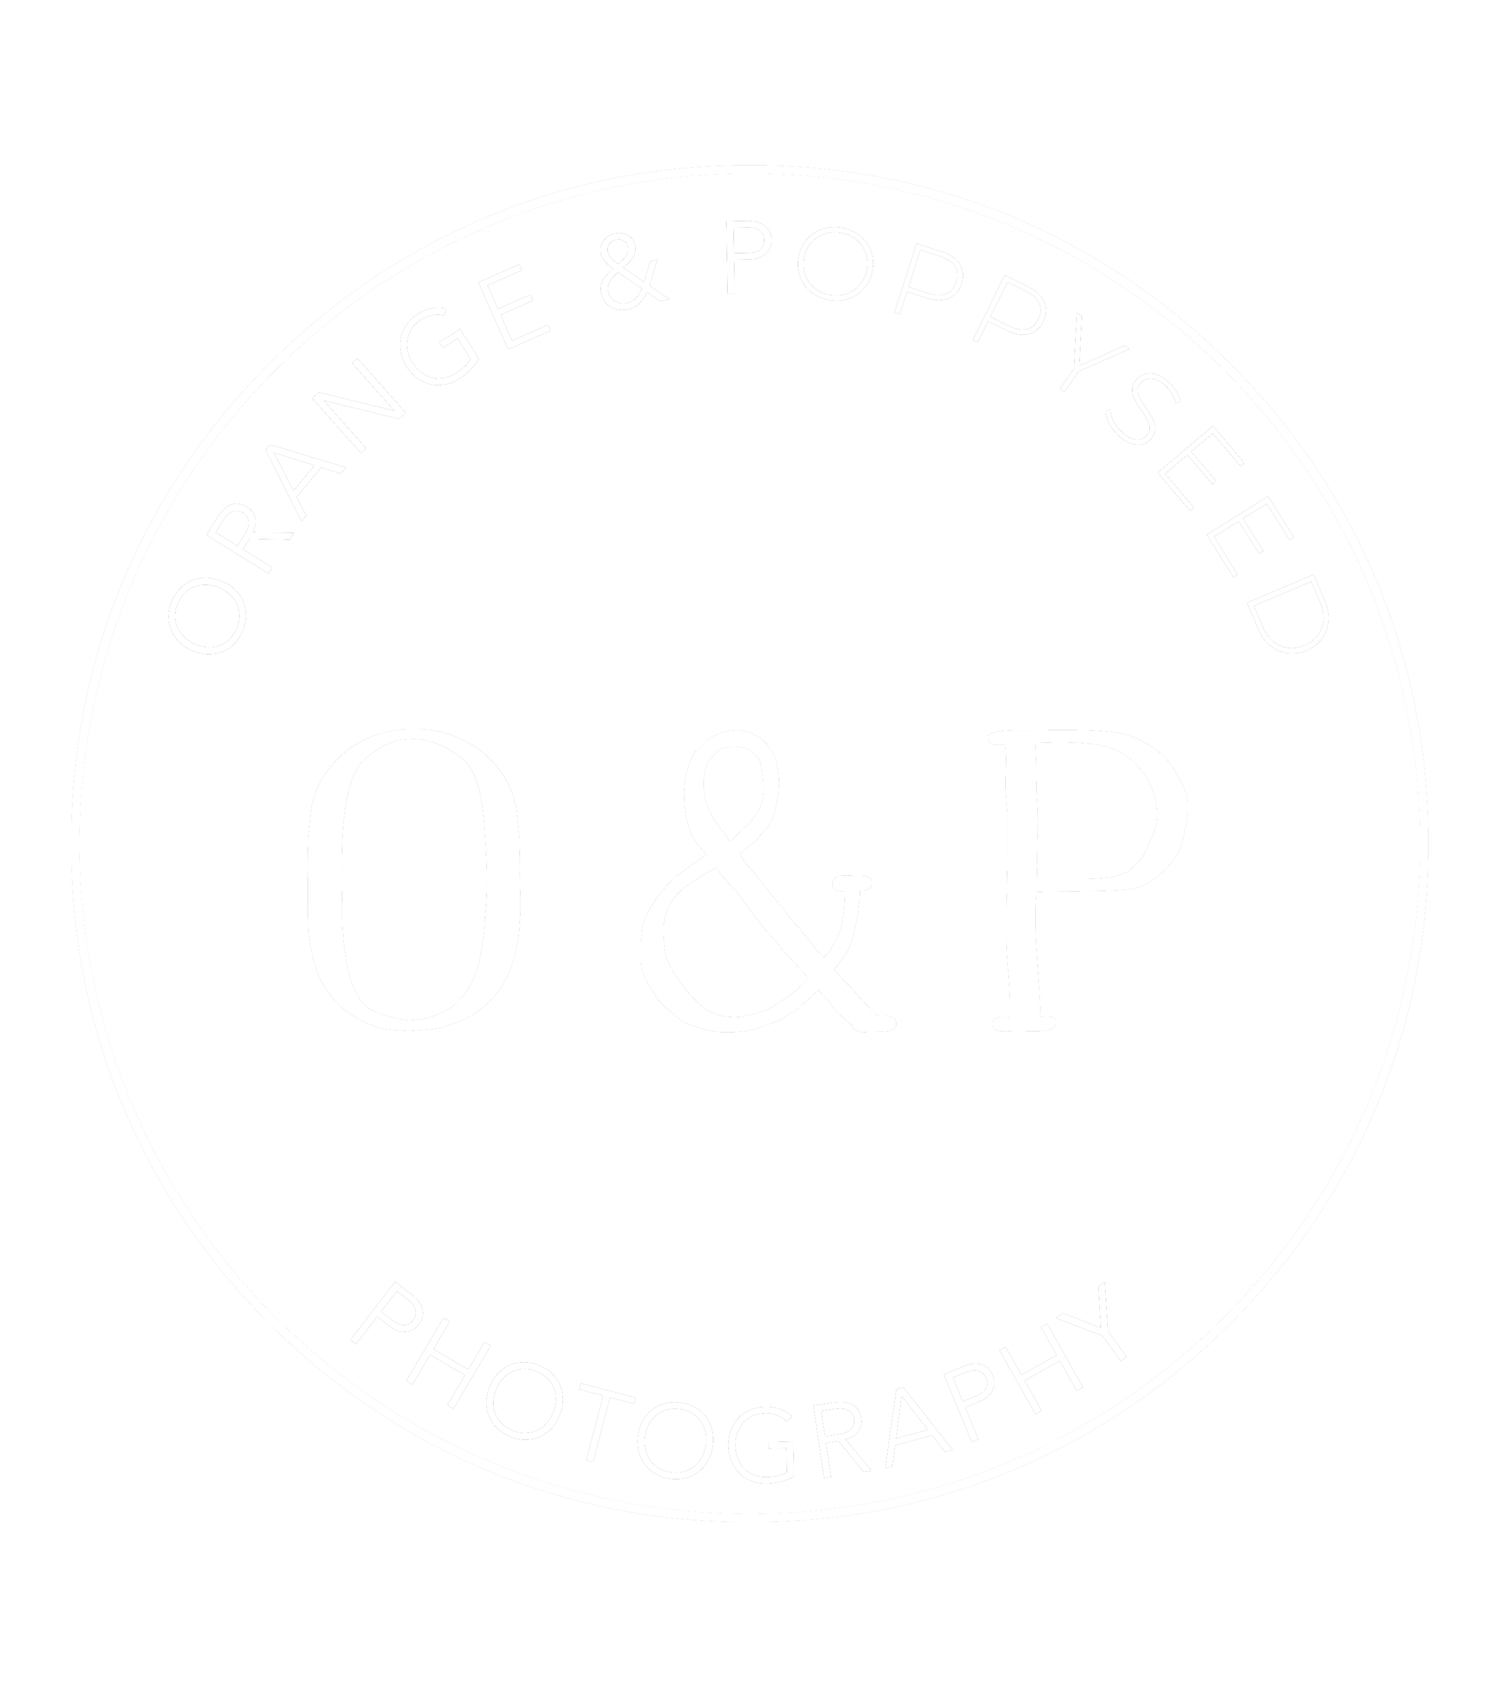 Orange & Poppyseed Photography